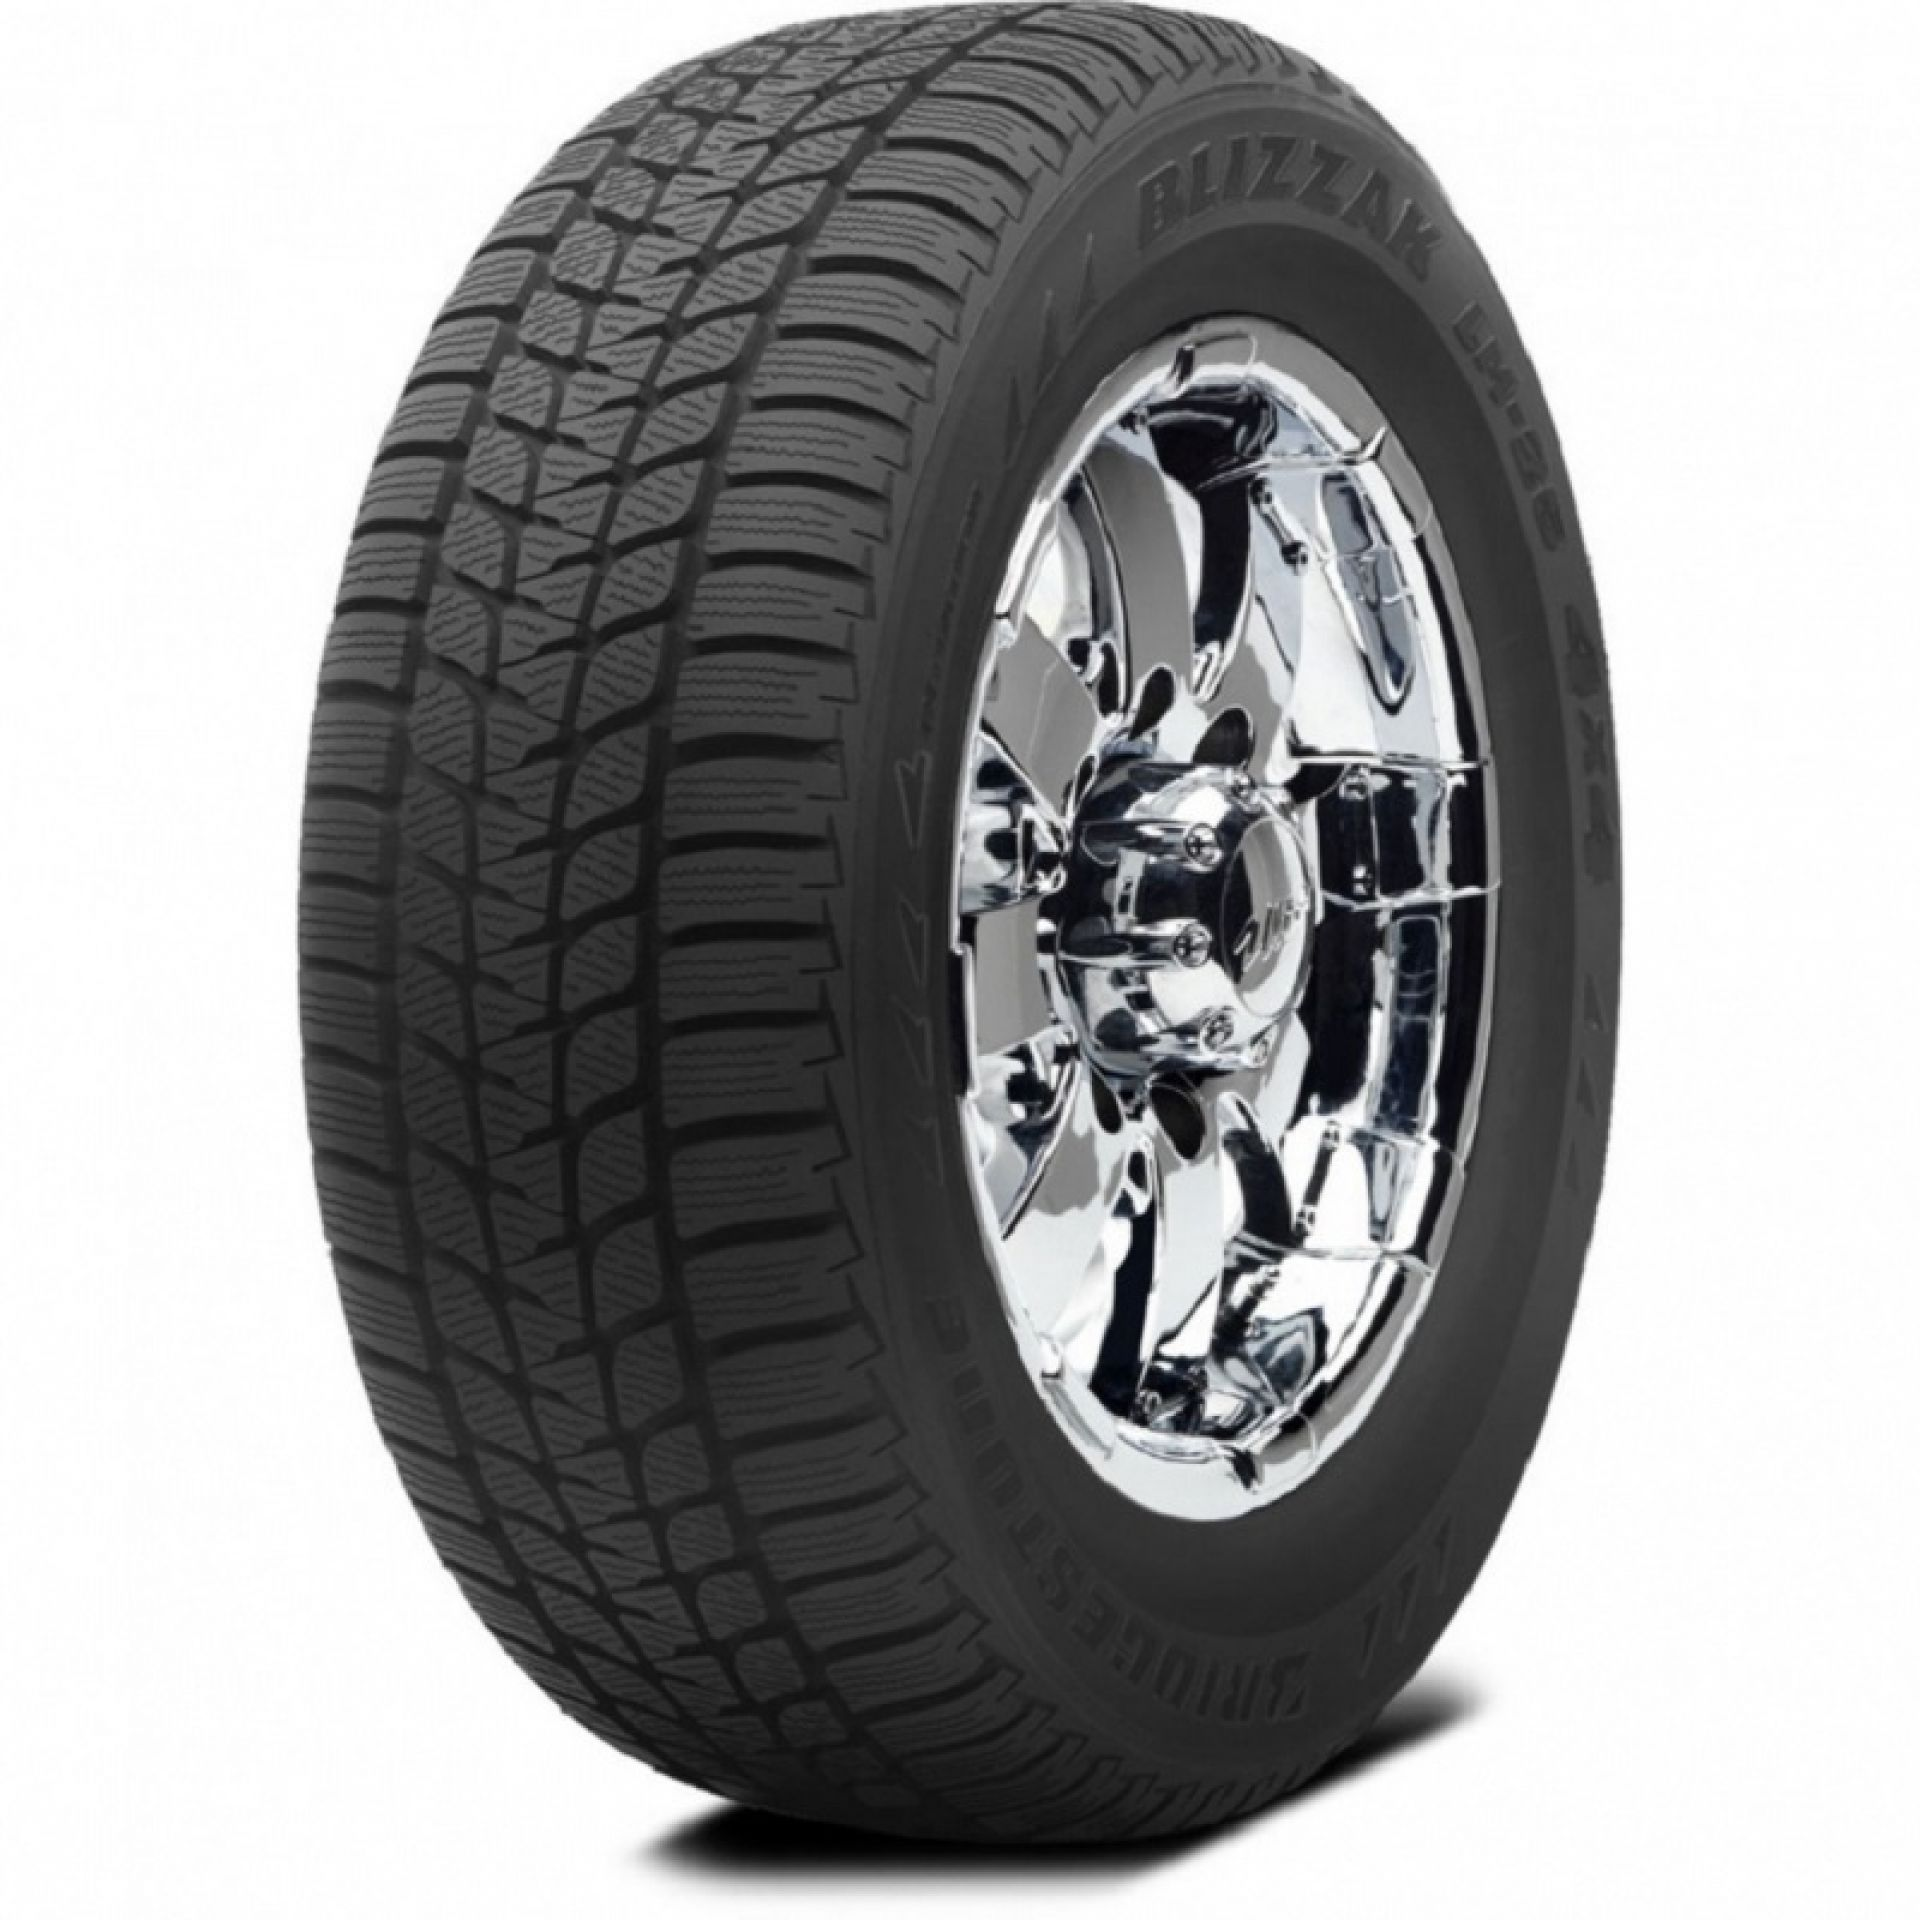 205/60r15 91h Lm25